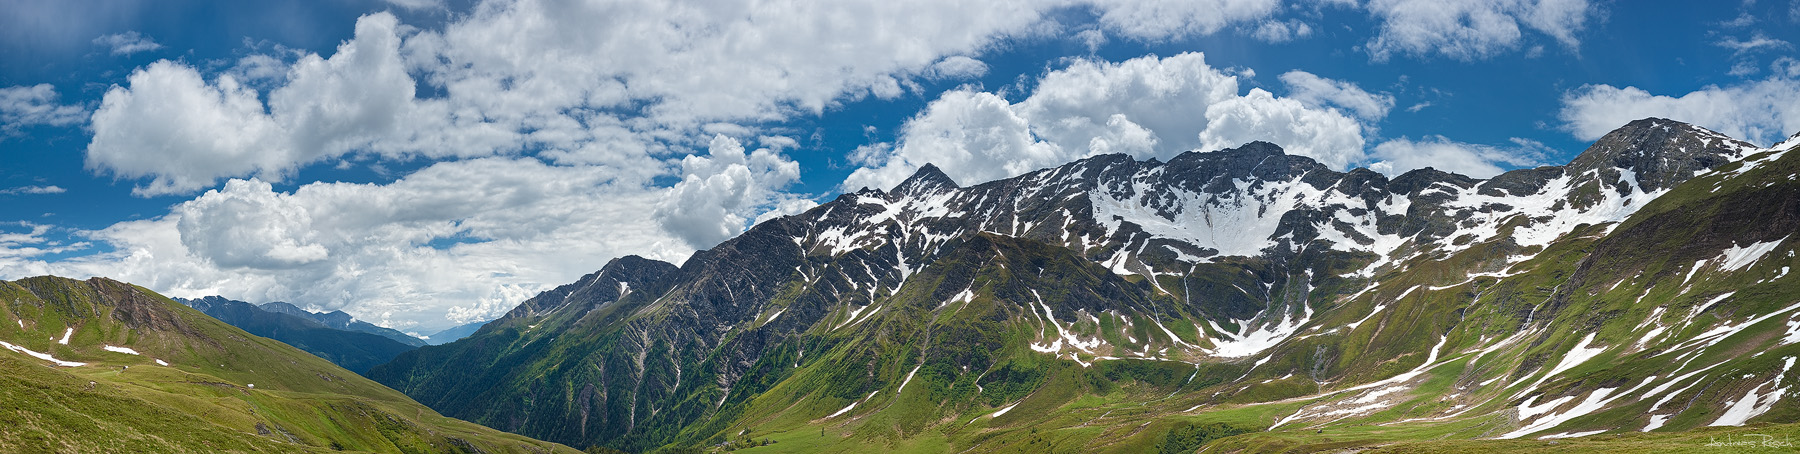 Jamnig - Panorama by AndreasResch